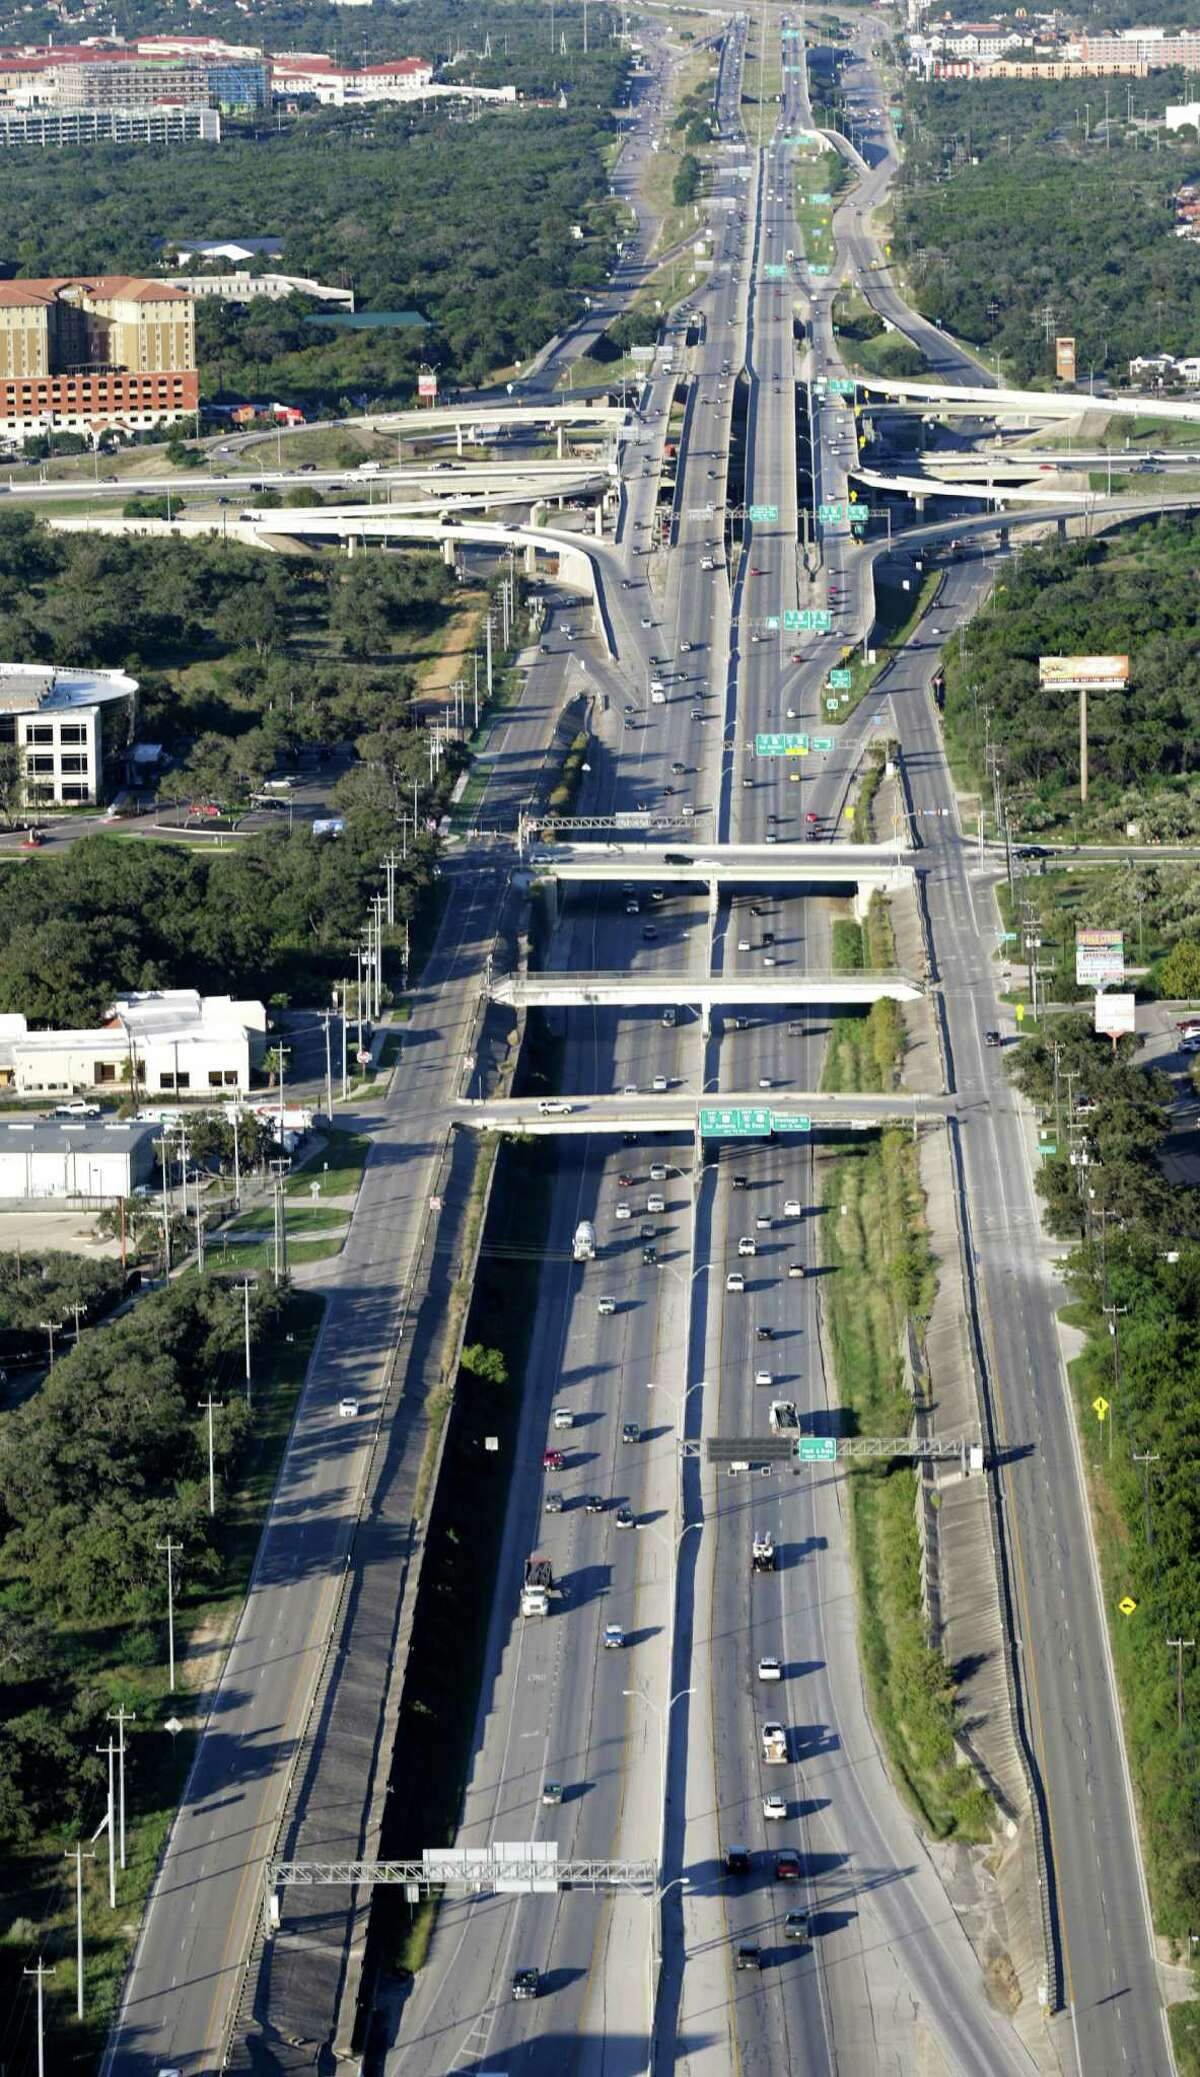 12. Loop 1604 from I-10 to Braun Road